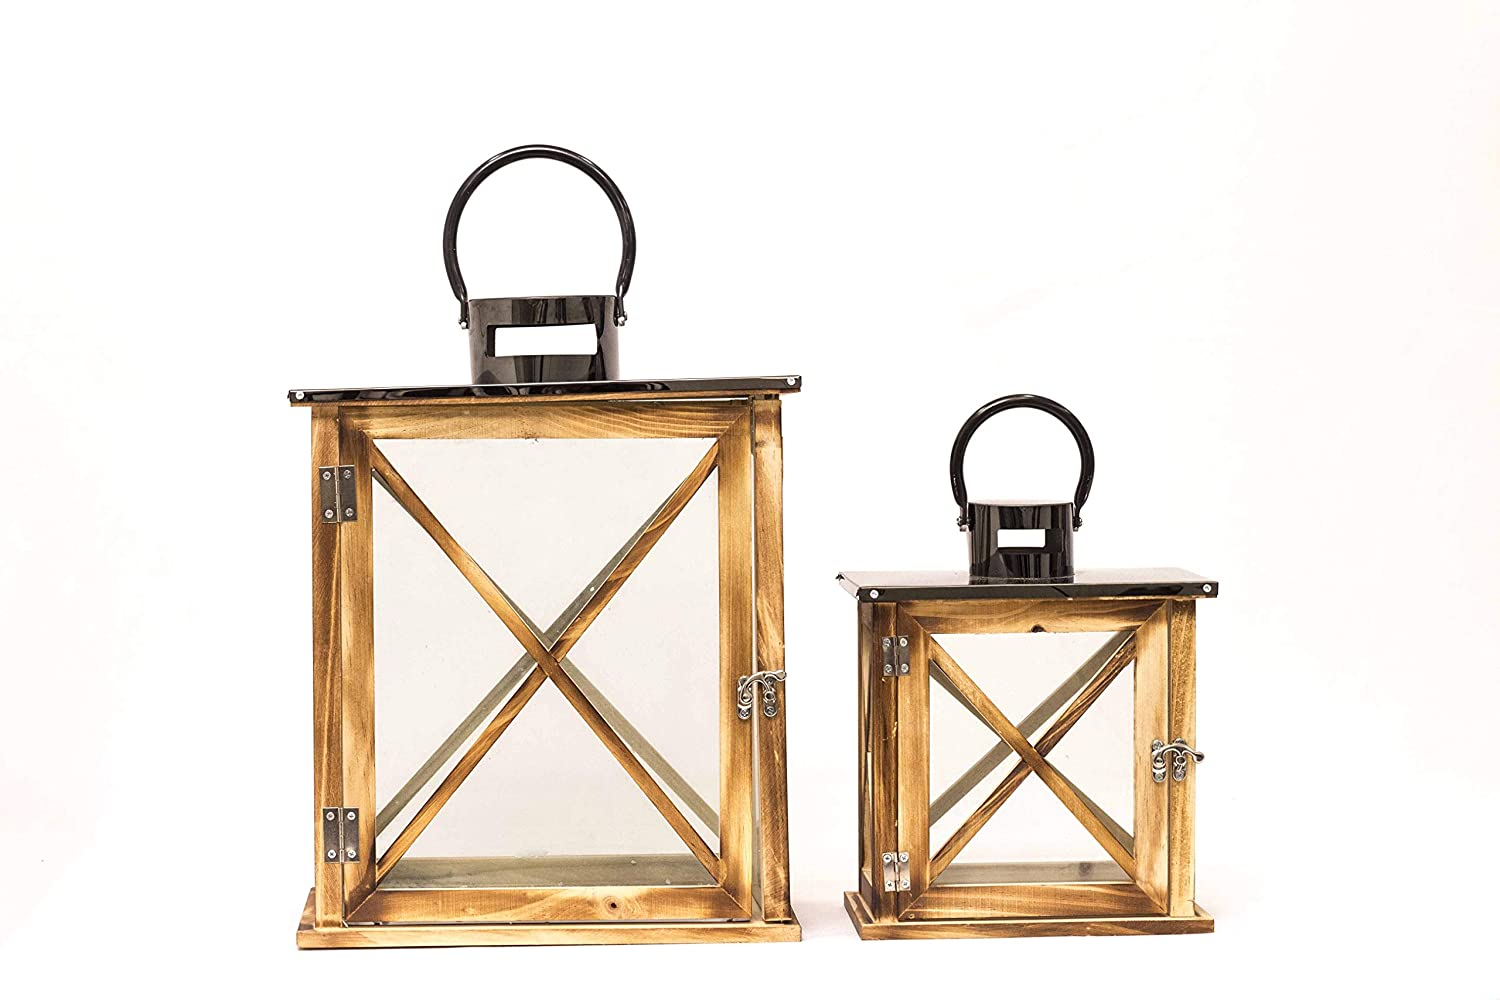 Polim Wooden Frame with Glass Candle Lantern for Home Decoration/Party Decor and Hanging Candle Lantern